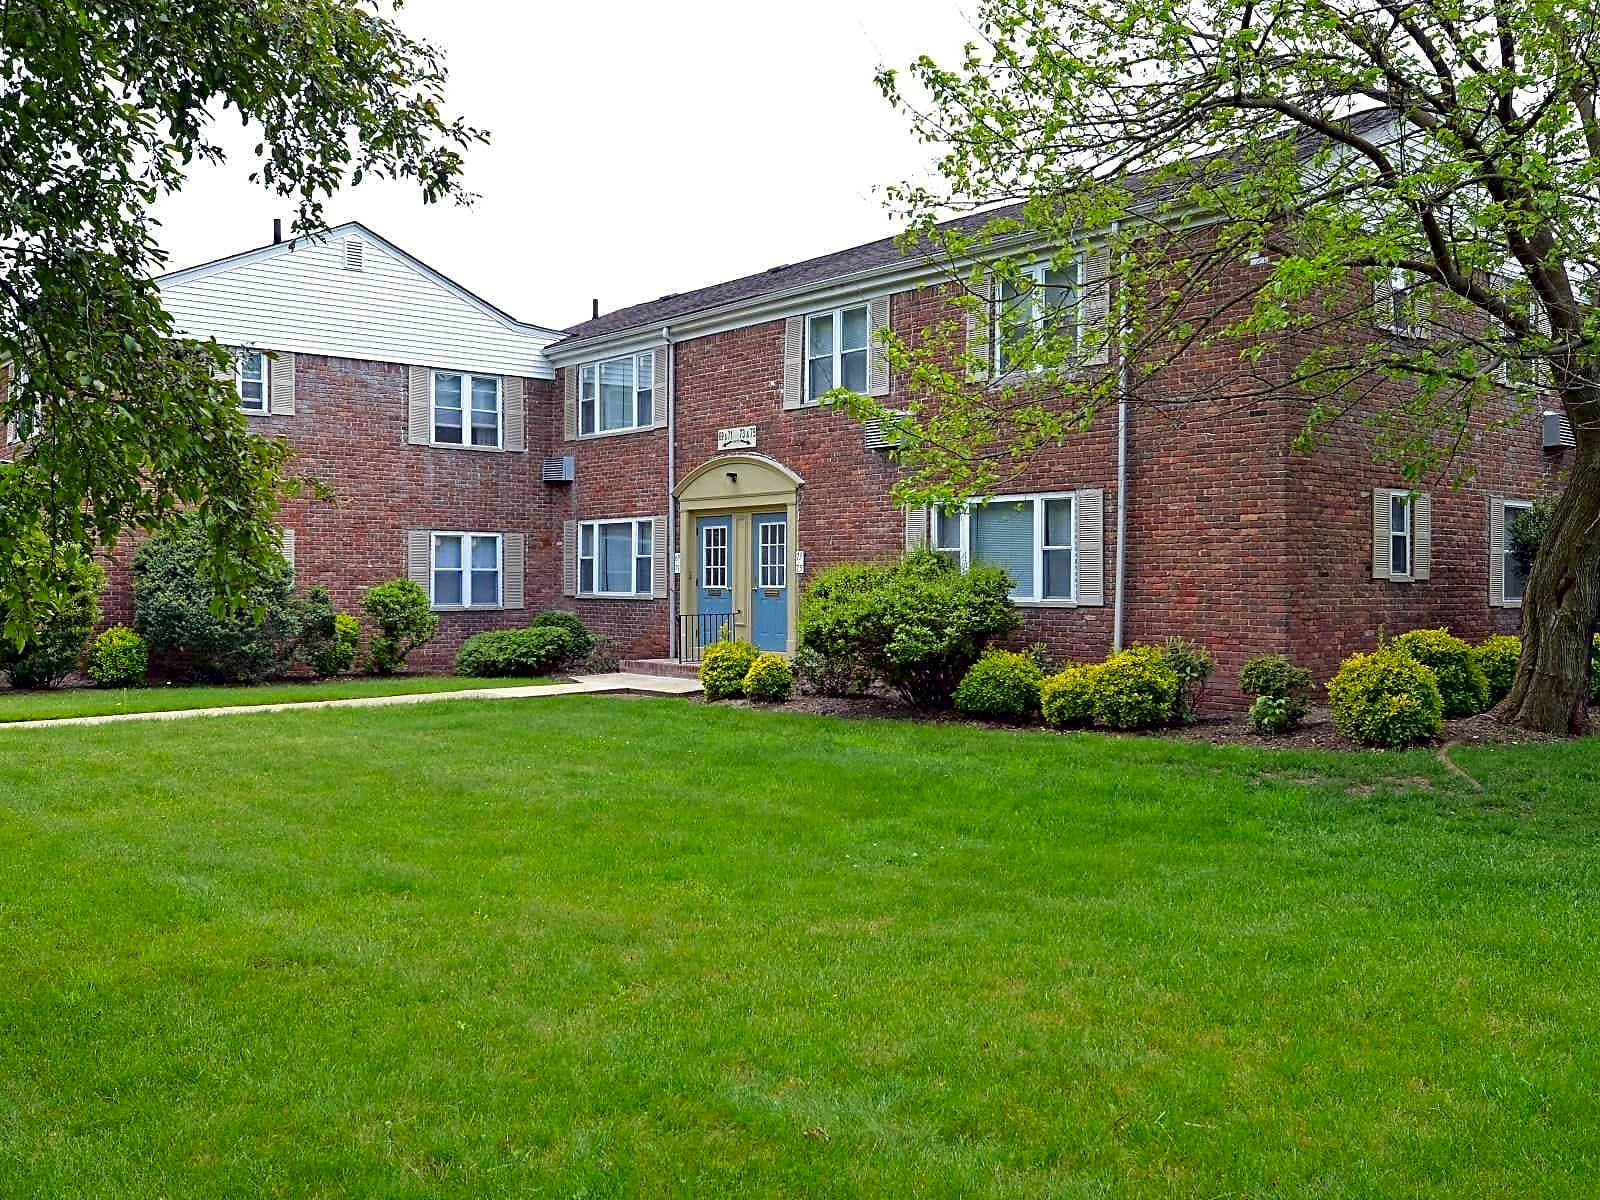 Apartments Near Rutgers Mountainview Gardens for Rutgers University Students in New Brunswick, NJ